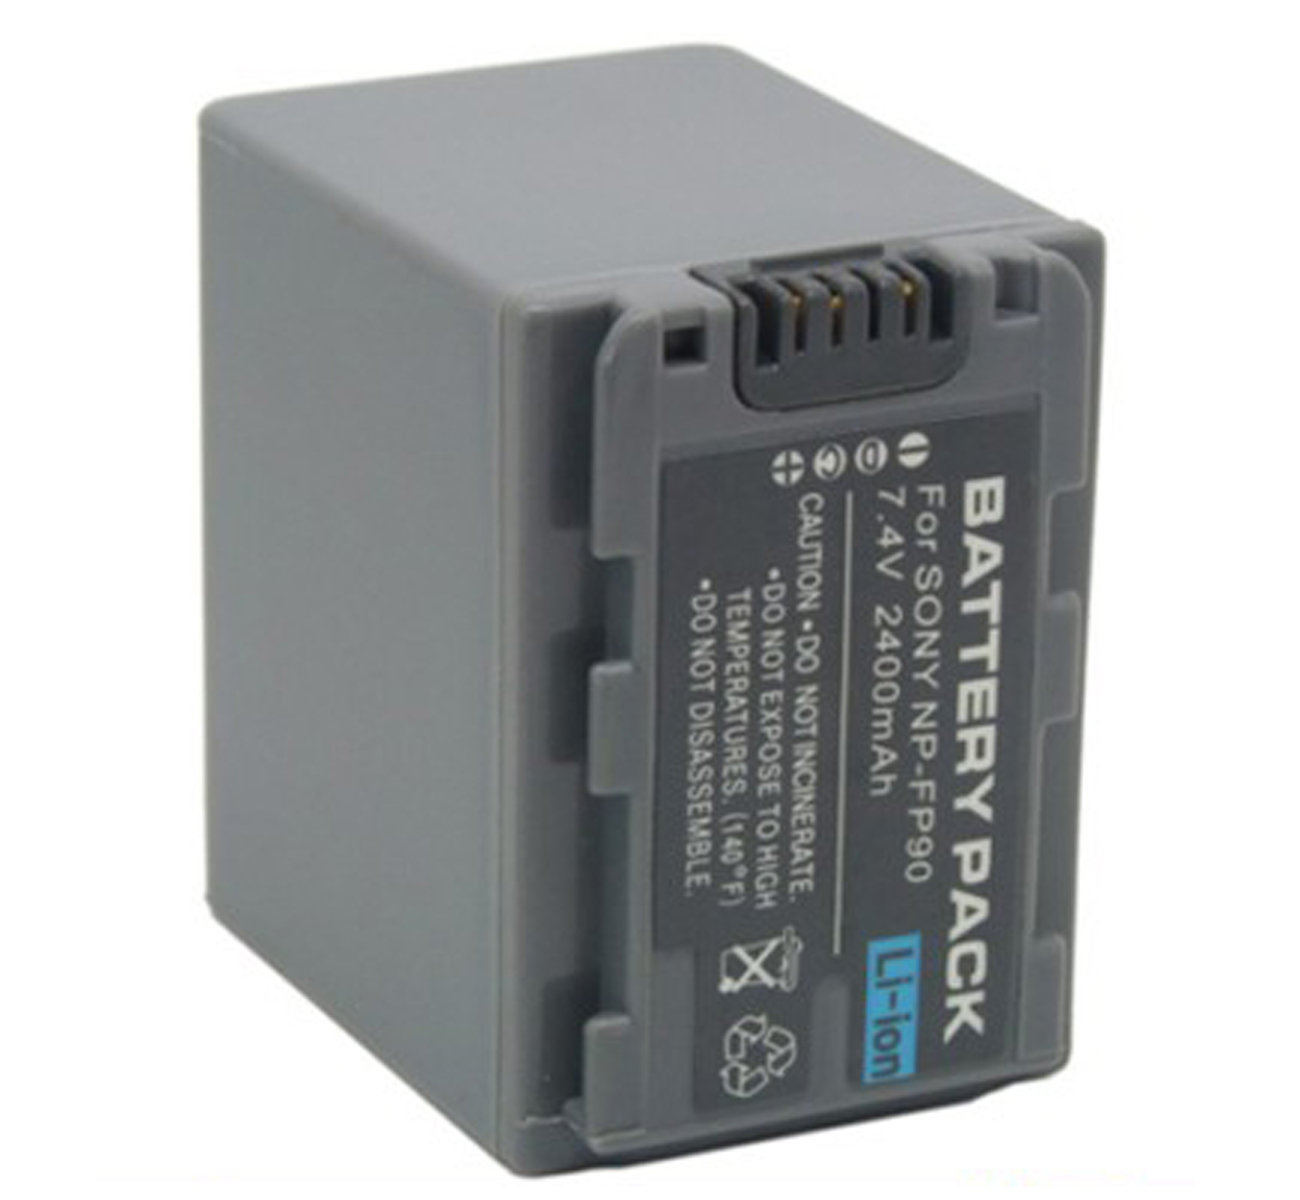 Rechargeable Lithium-Ion Battery Pack for Sony NP-FP30 NP-FP50 NP-FP60 InfoLITHIUM P Series